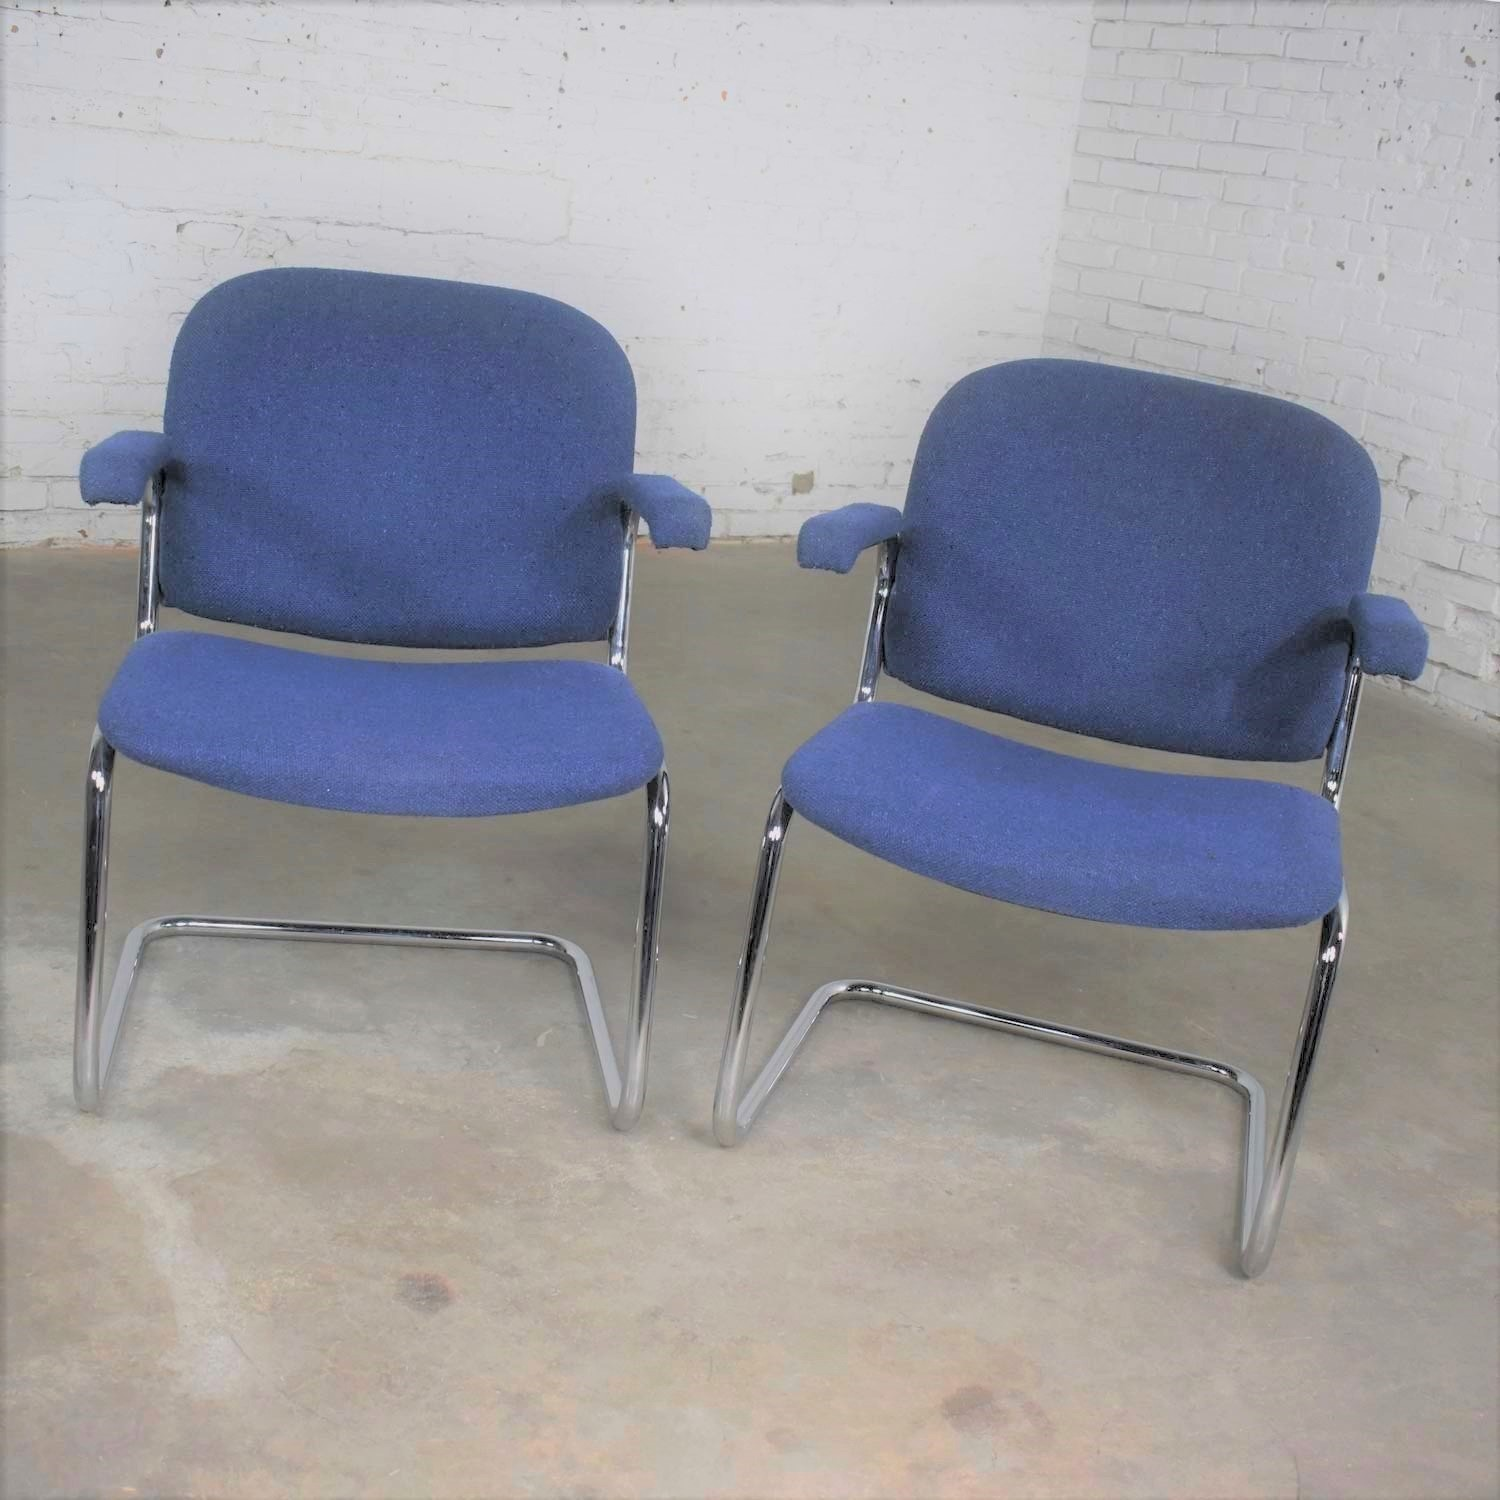 Vintage Lounge Stoel.Vintage Tubular Chrome And Blue Fabric Cantilever Lounge Chair